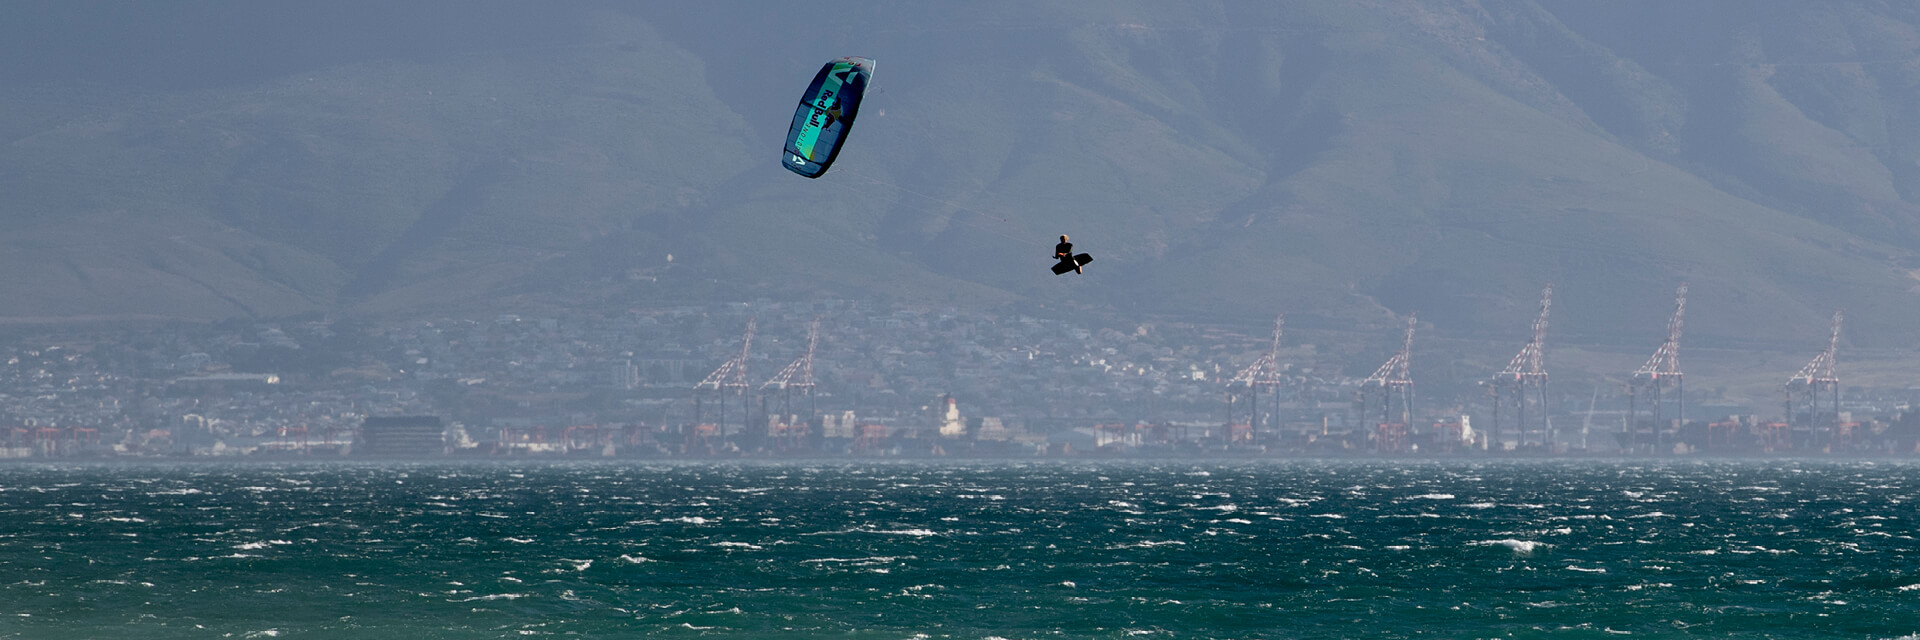 Duotone Kiteboarding King of the Air review Lasse Walker Dice 2020